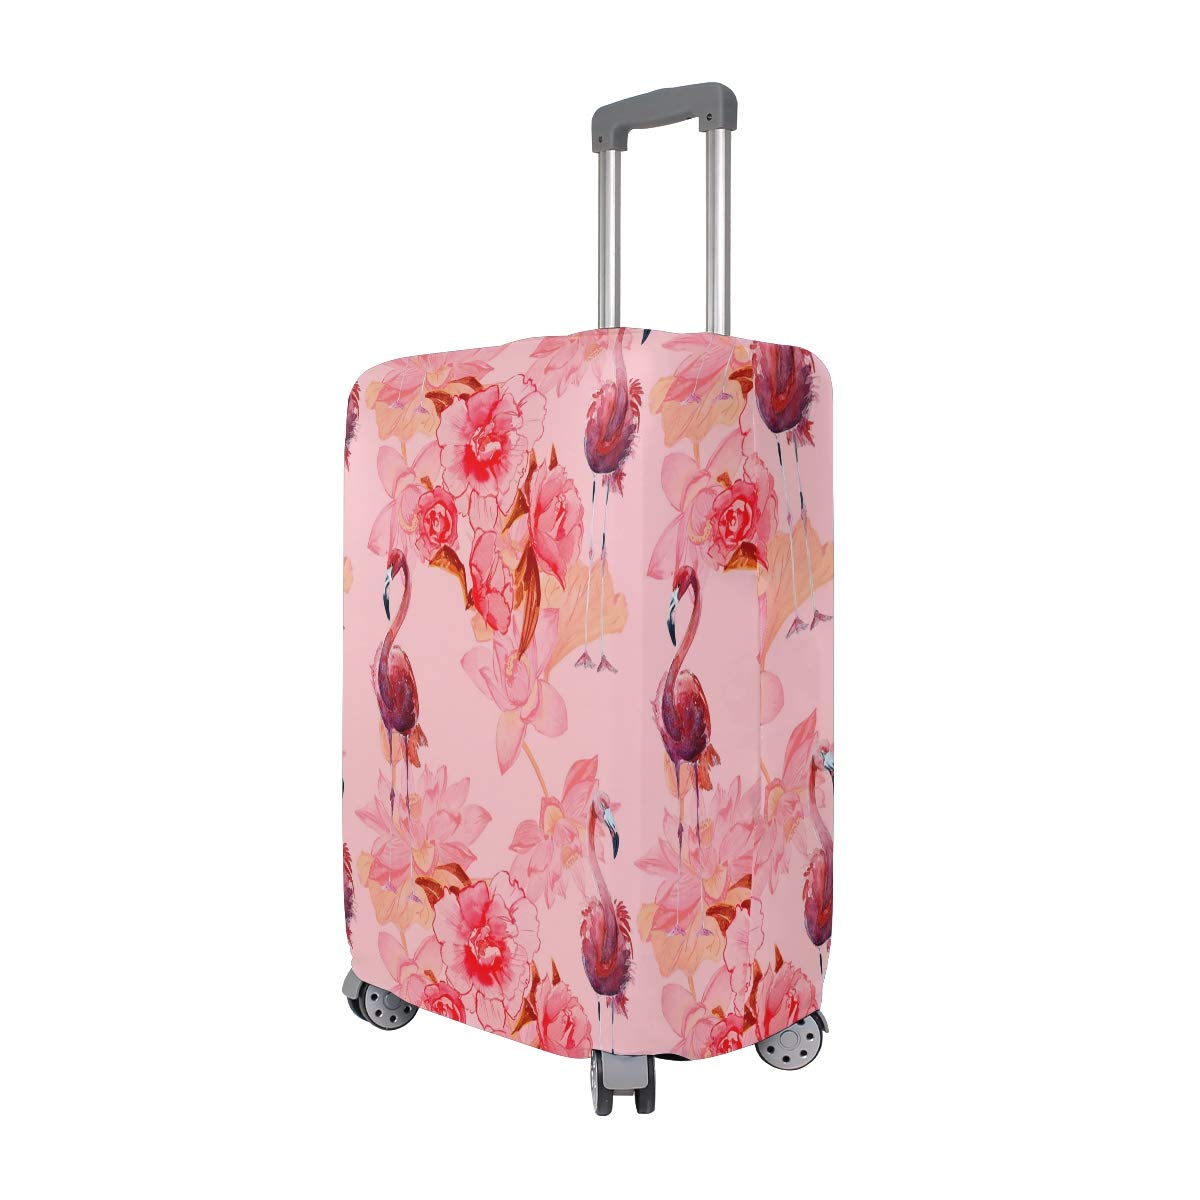 VIKKO Pink Flowers And Flamingo Travel Luggage Cover Suitcase Cover Protector Travel Case Bag Protector Elastic Luggage Case Cover Fits 29-32 Inch Luggage for Kids Men Women Travel